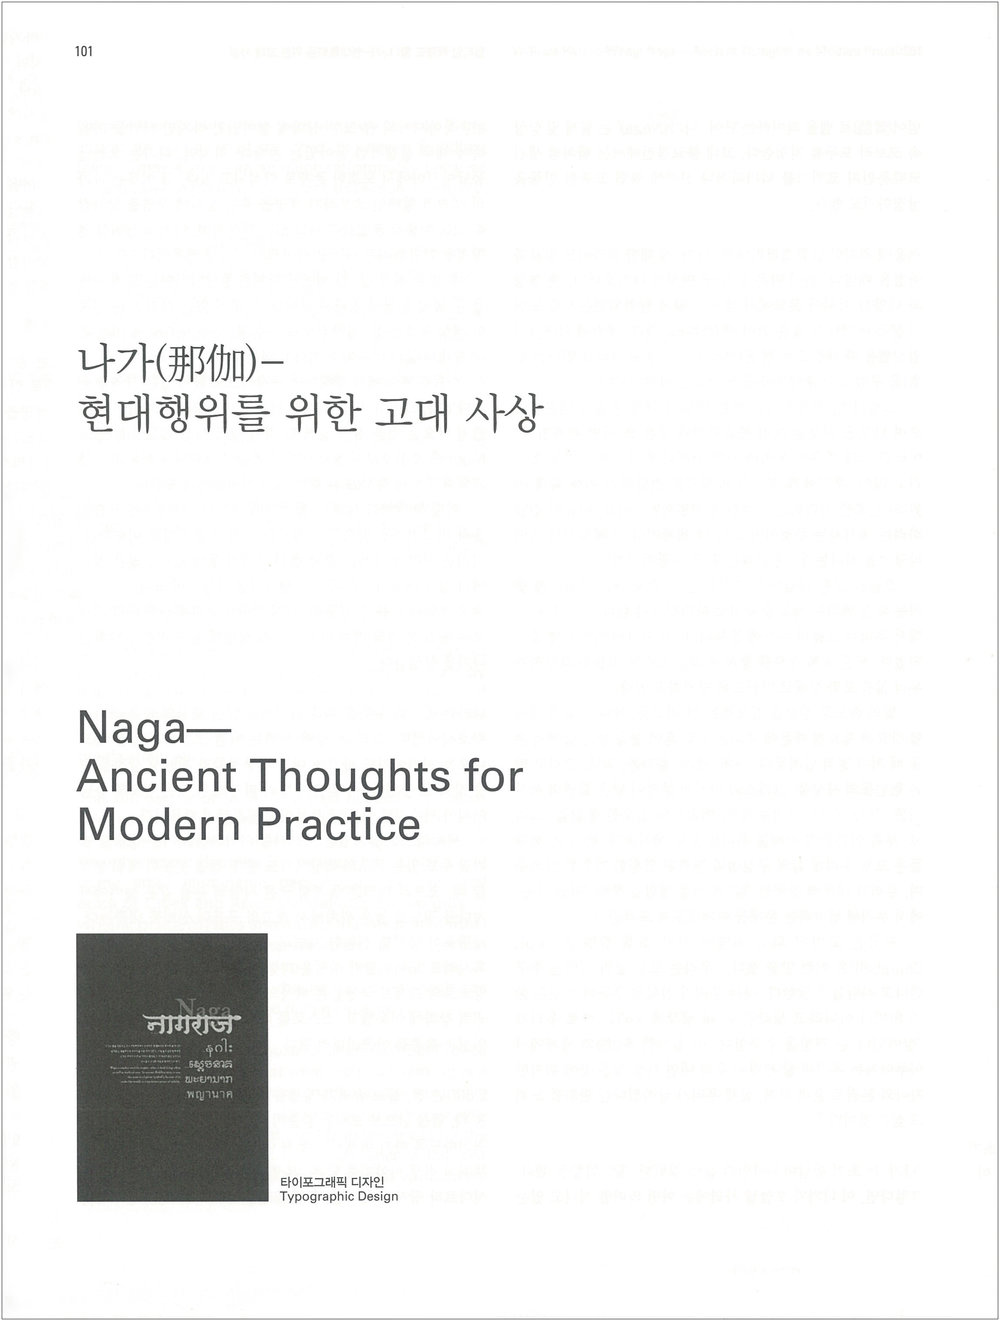 Naga–Ancient Thoughts for Modern Practice  Korean Design Research Institute, Apr 2005